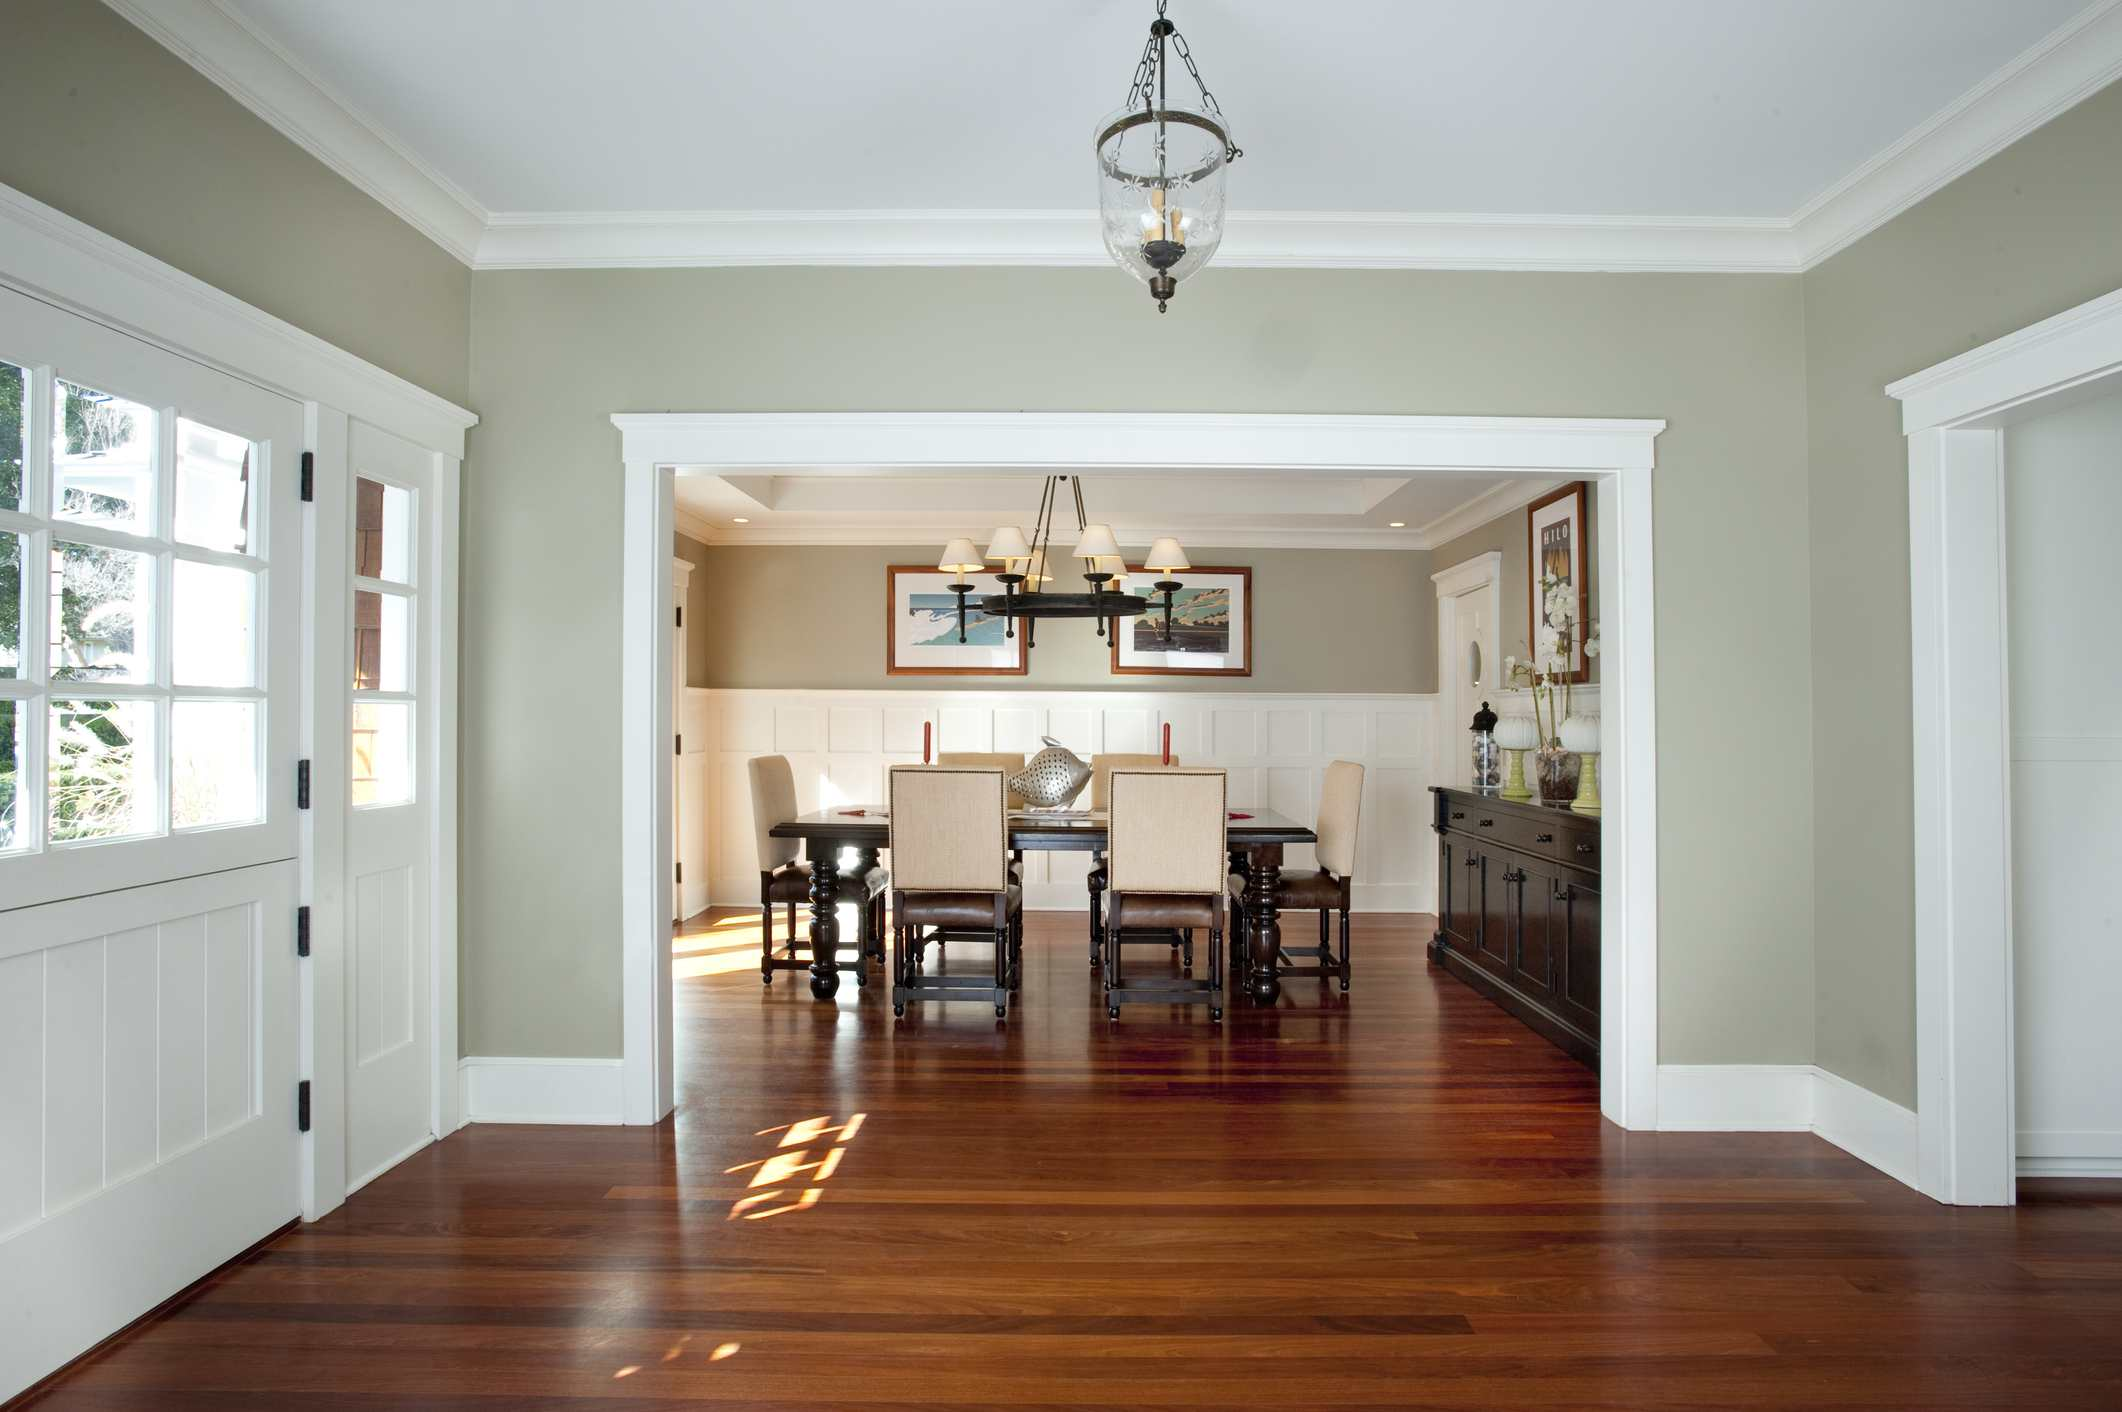 5 Beautiful Accent Wall Ideas To Spruce Up Your Home: Guide To Wall Trim Types And Styles